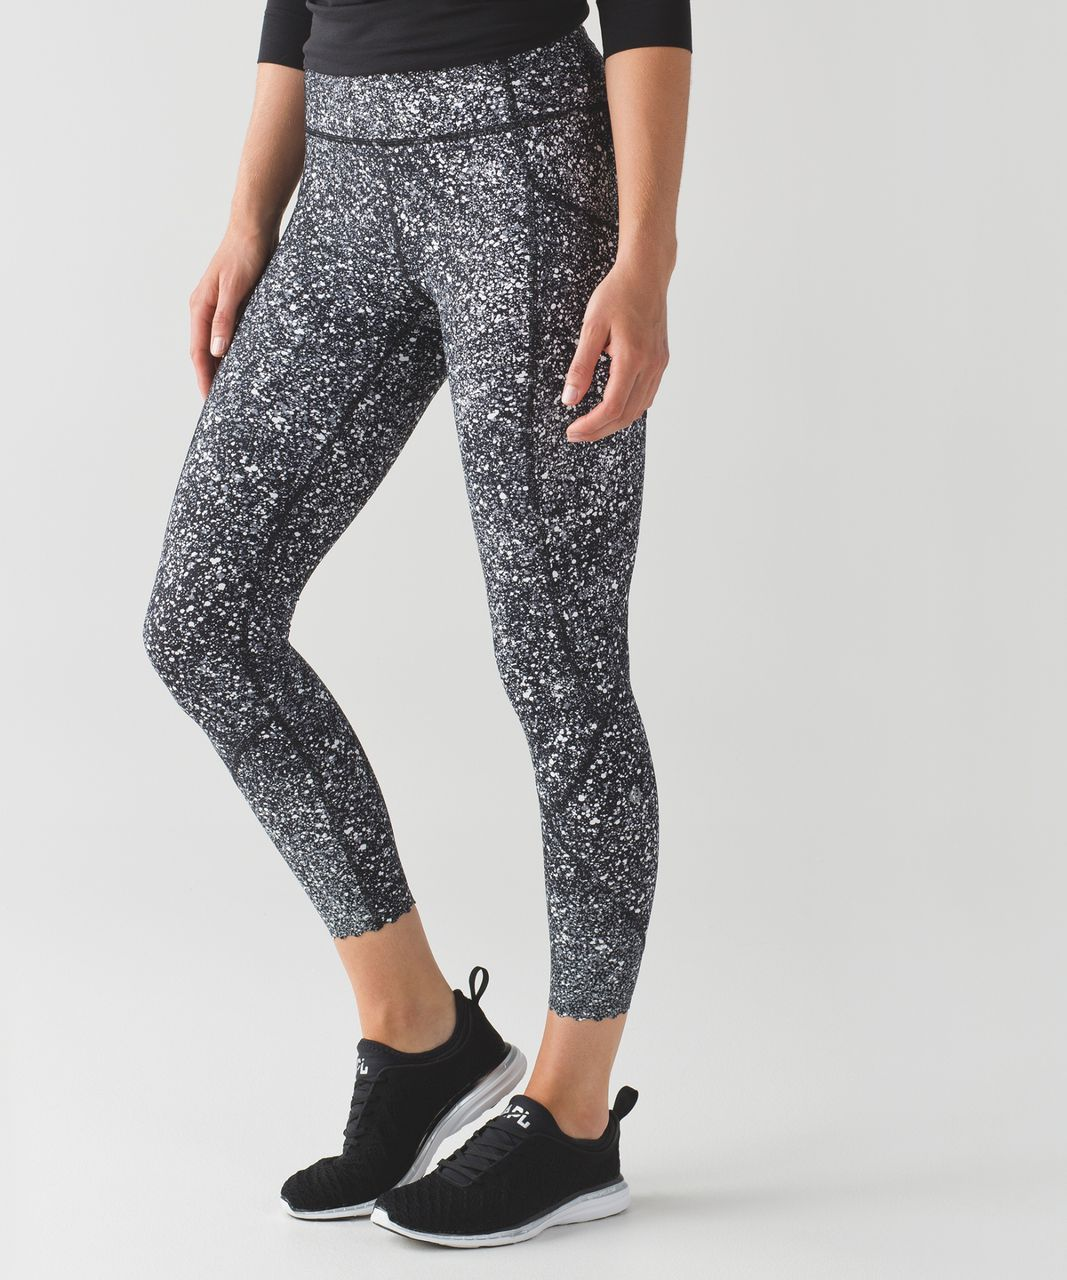 d98ab7ac18 Lululemon Tight Stuff Tight II - Splatter White Black / Black ...